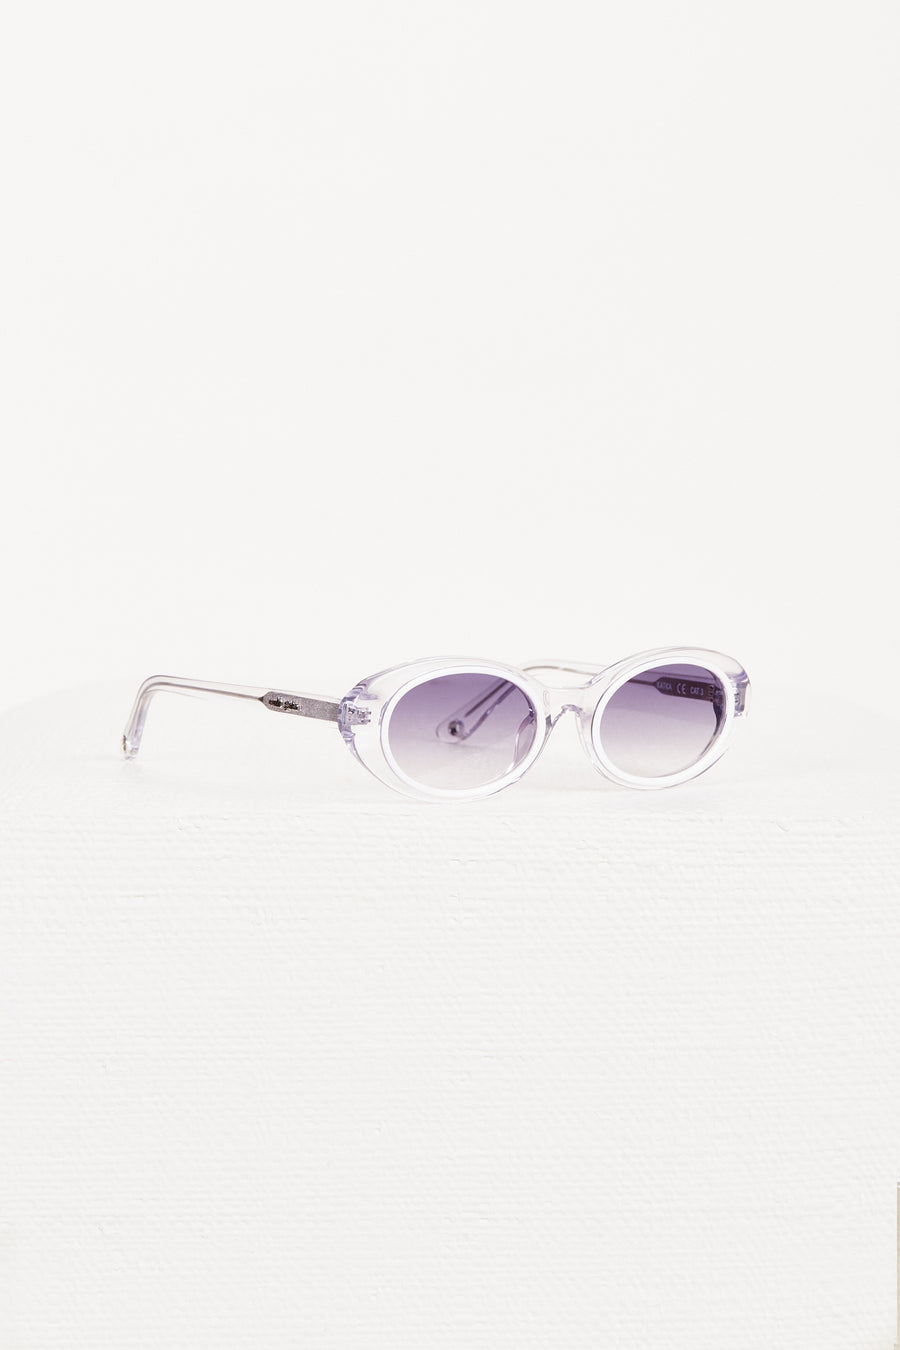 KATKA SUNGLASSES - WHITE